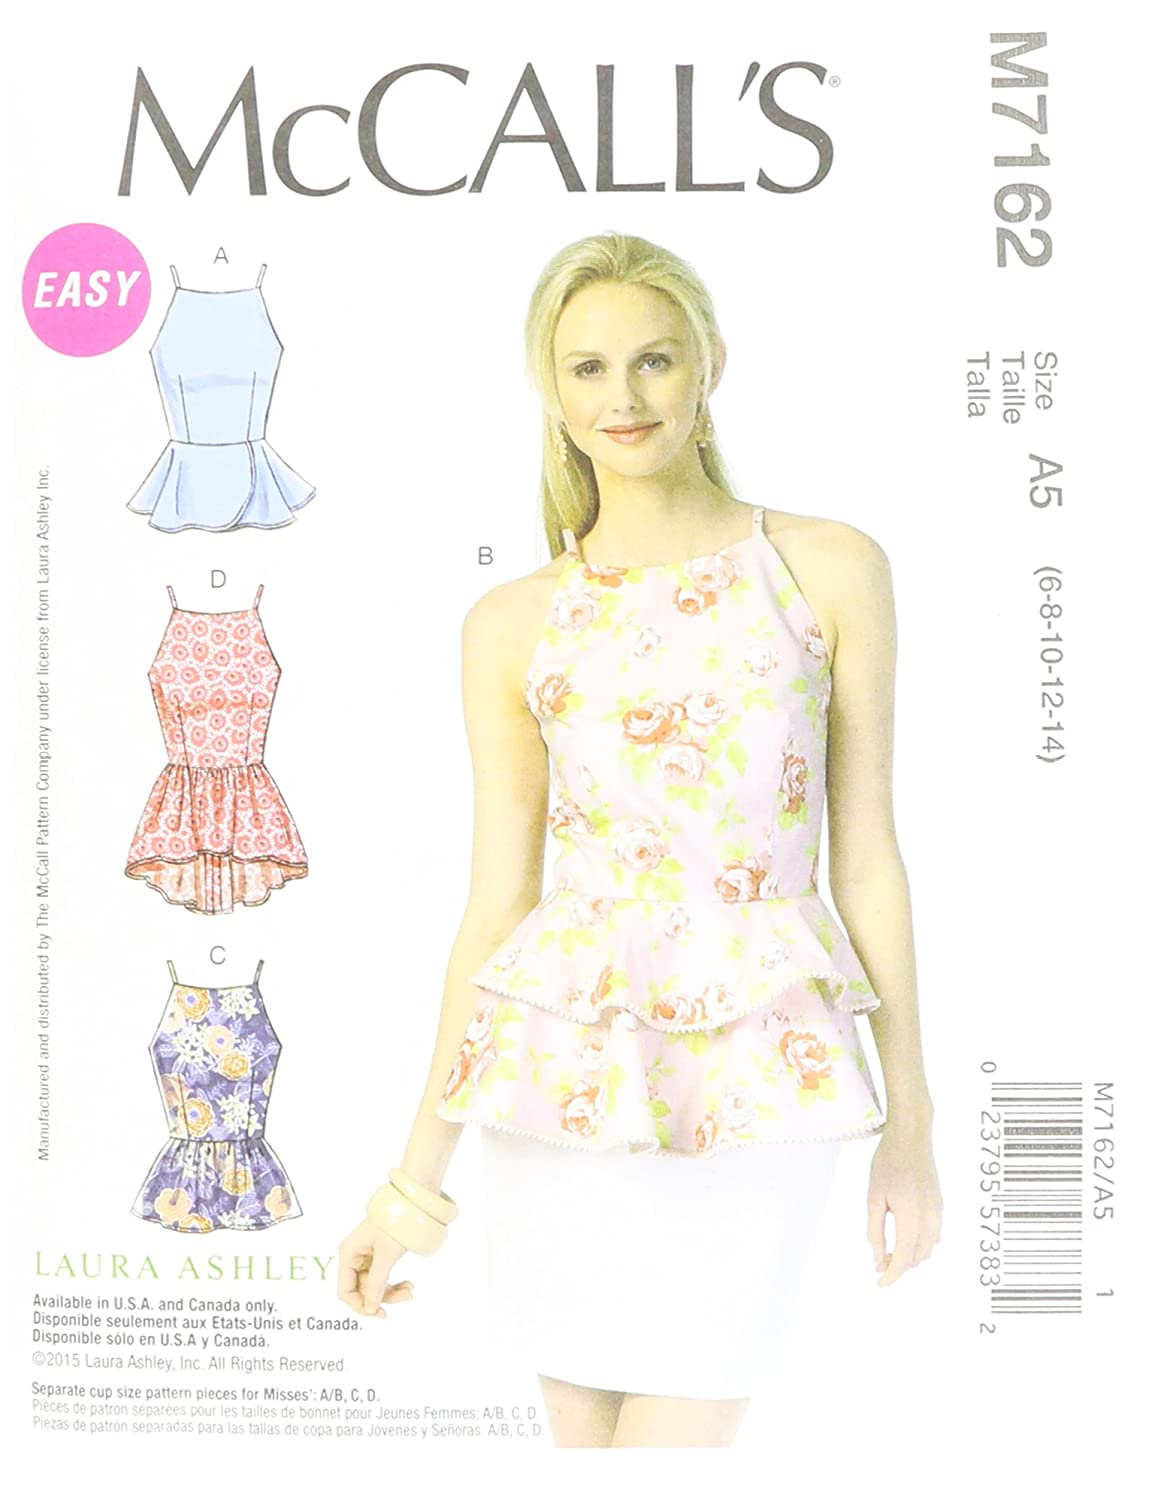 Amazon.com: McCall\'s Patterns M7162 Misses\' Tops Sewing Template, A5 ...